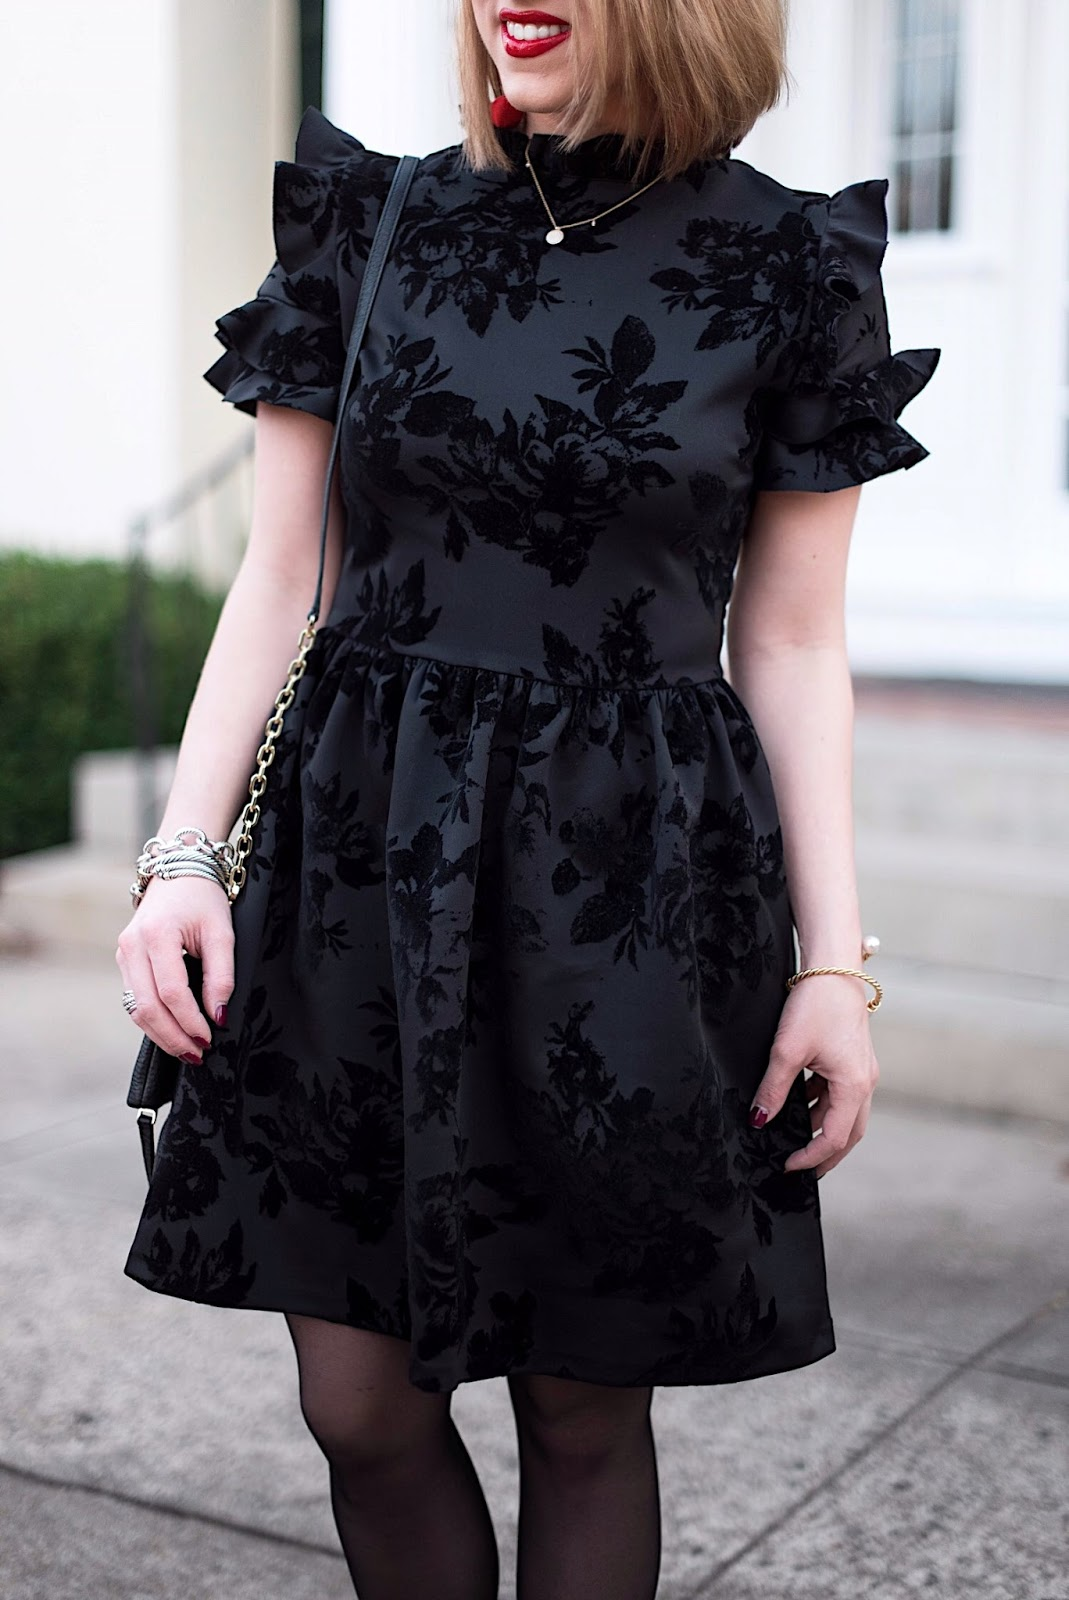 Black Velvet Dress - Something Delightful Blog